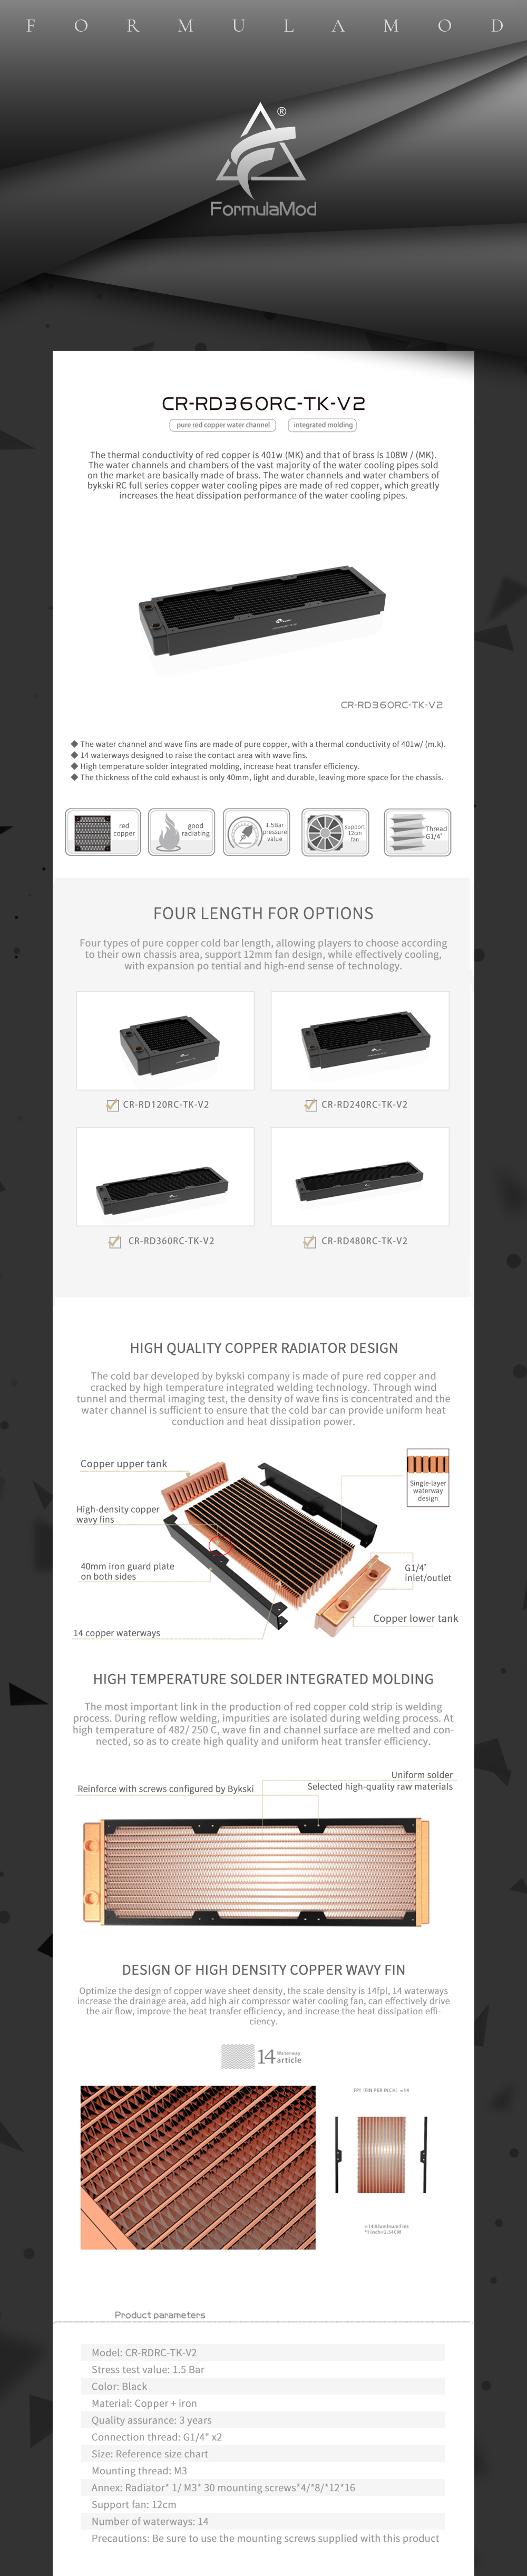 Bykski 360mm Copper Radiator RC Series High-performance Heat Dissipation 40mm Thickness for 12cm Fan Cooler, CR-RD360RC-TK-V2